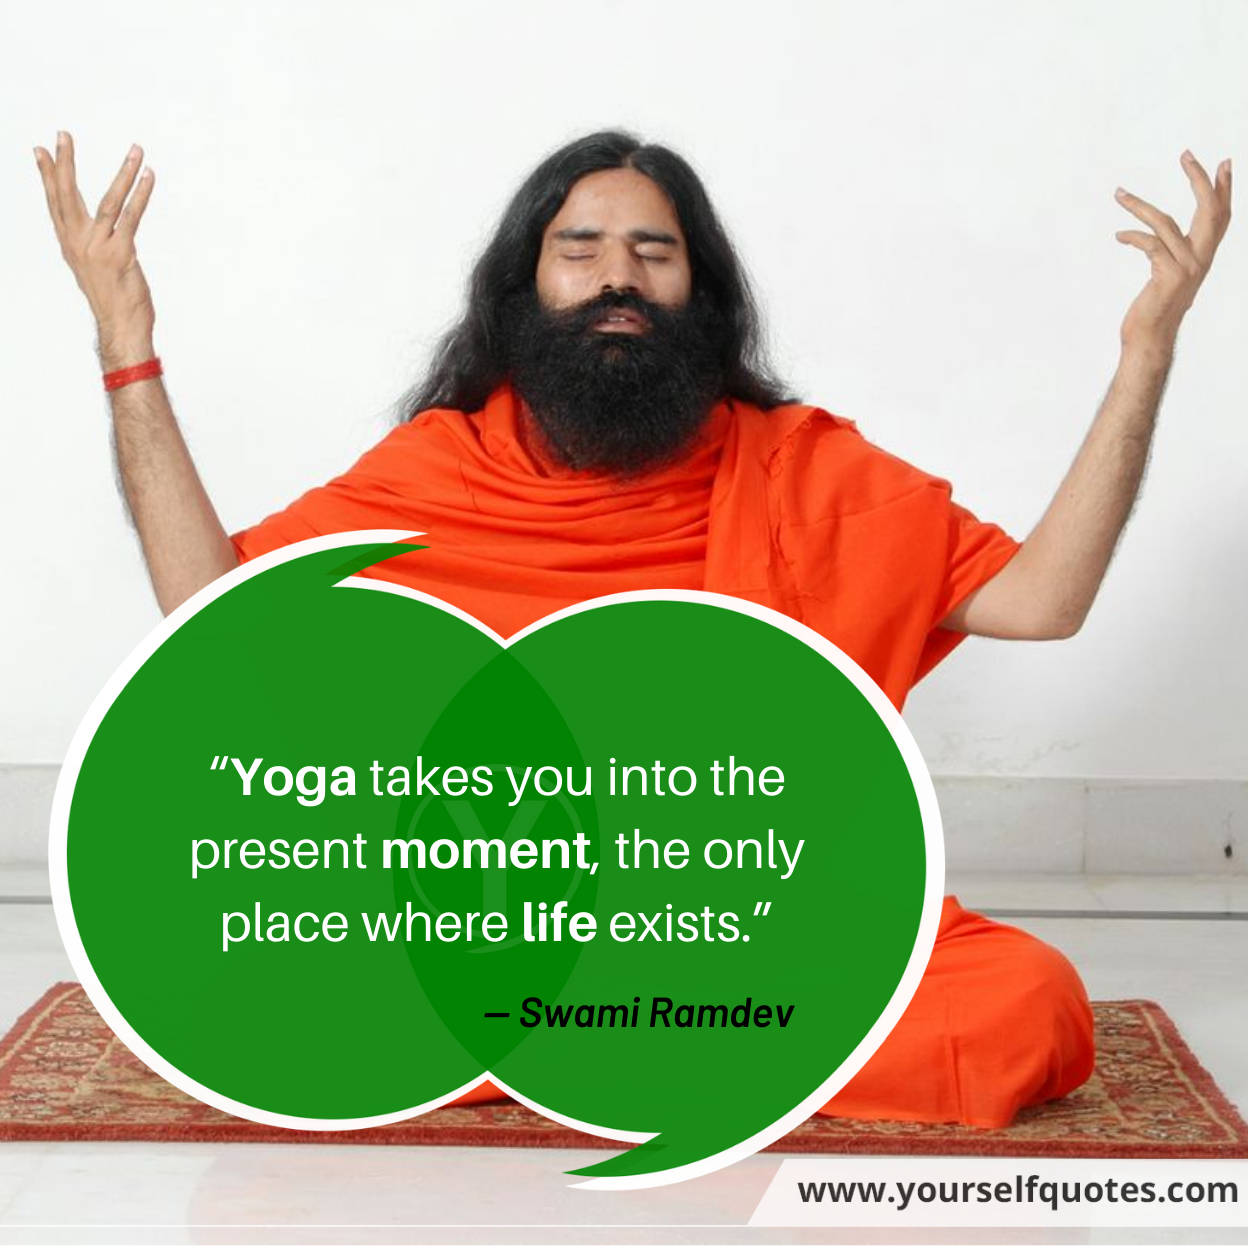 Ramdev Baba Yoga Quotes Images